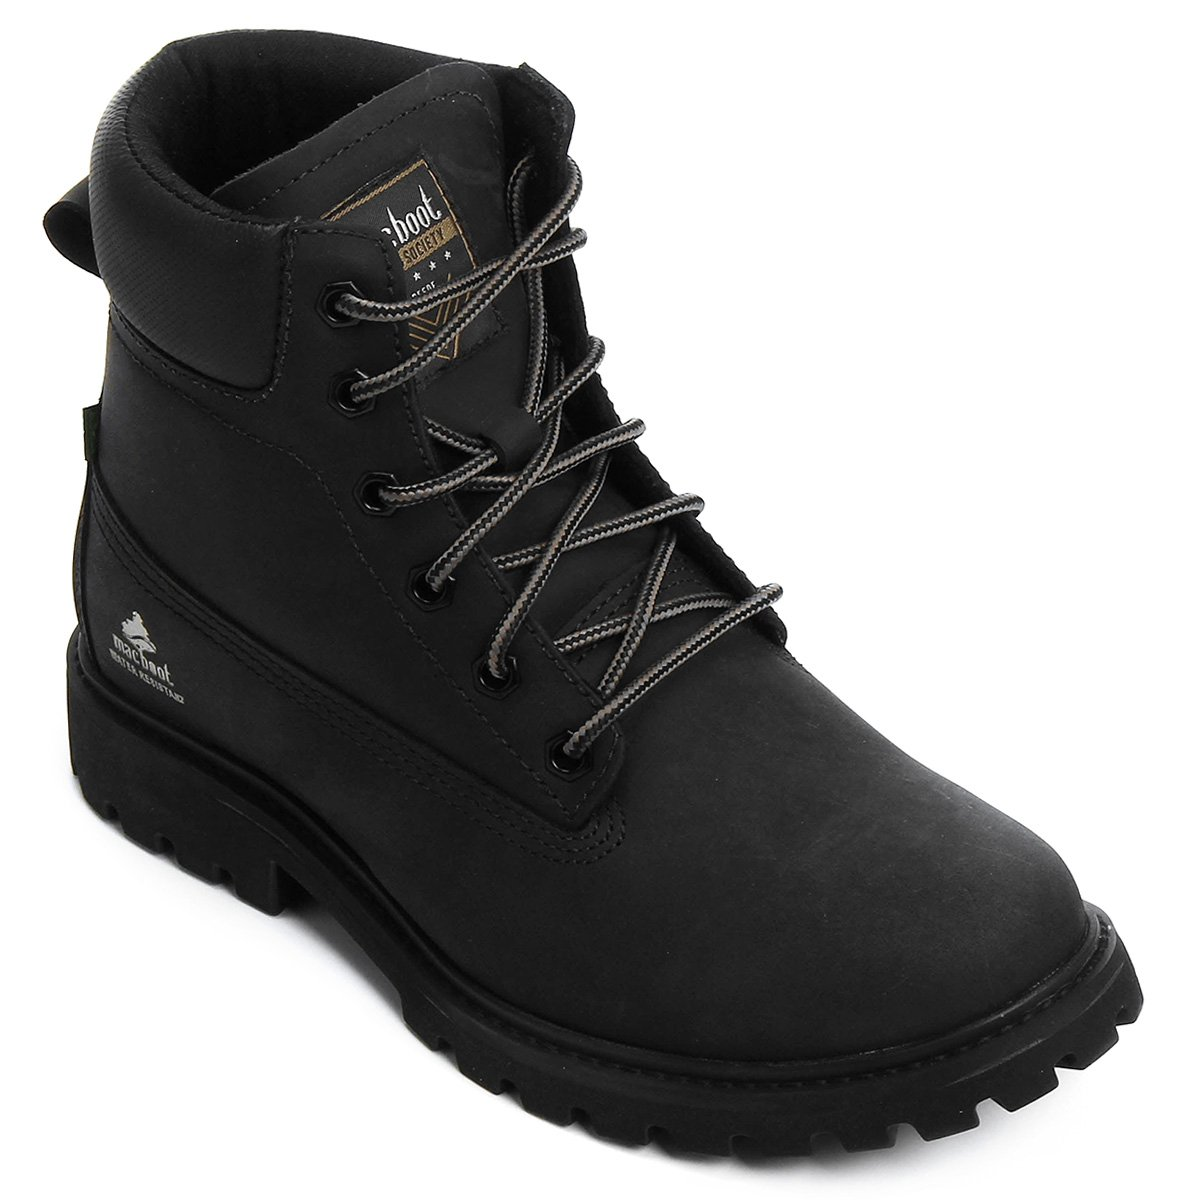 MacBoot Preto 10 Bota Bota Roraima MacBoot FqSwzEf8Y